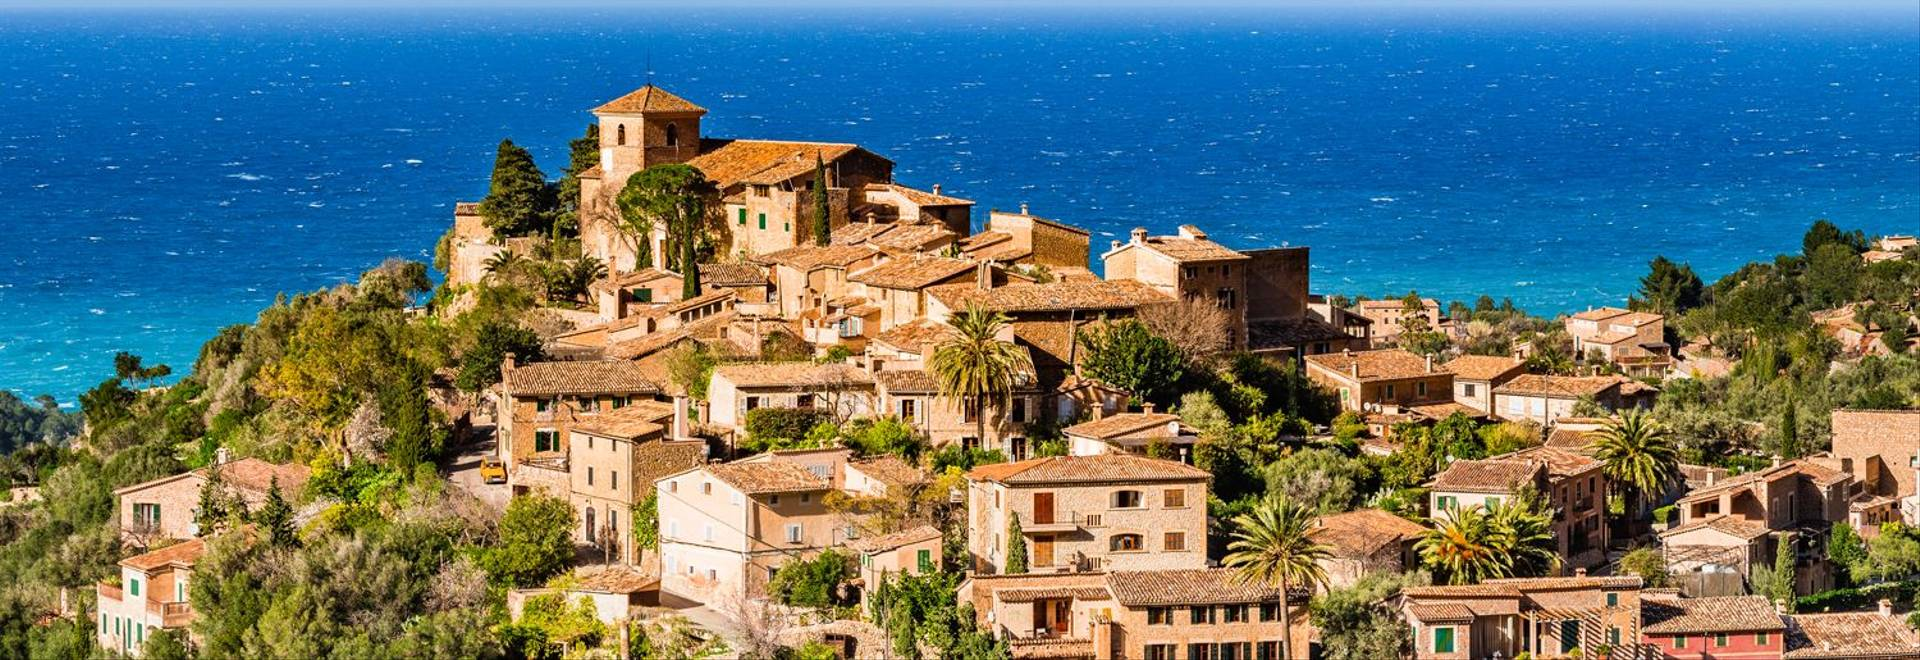 Old mediterranean village Deia at the coast in the mountains of Majorca island, Mediterranean Sea Spain